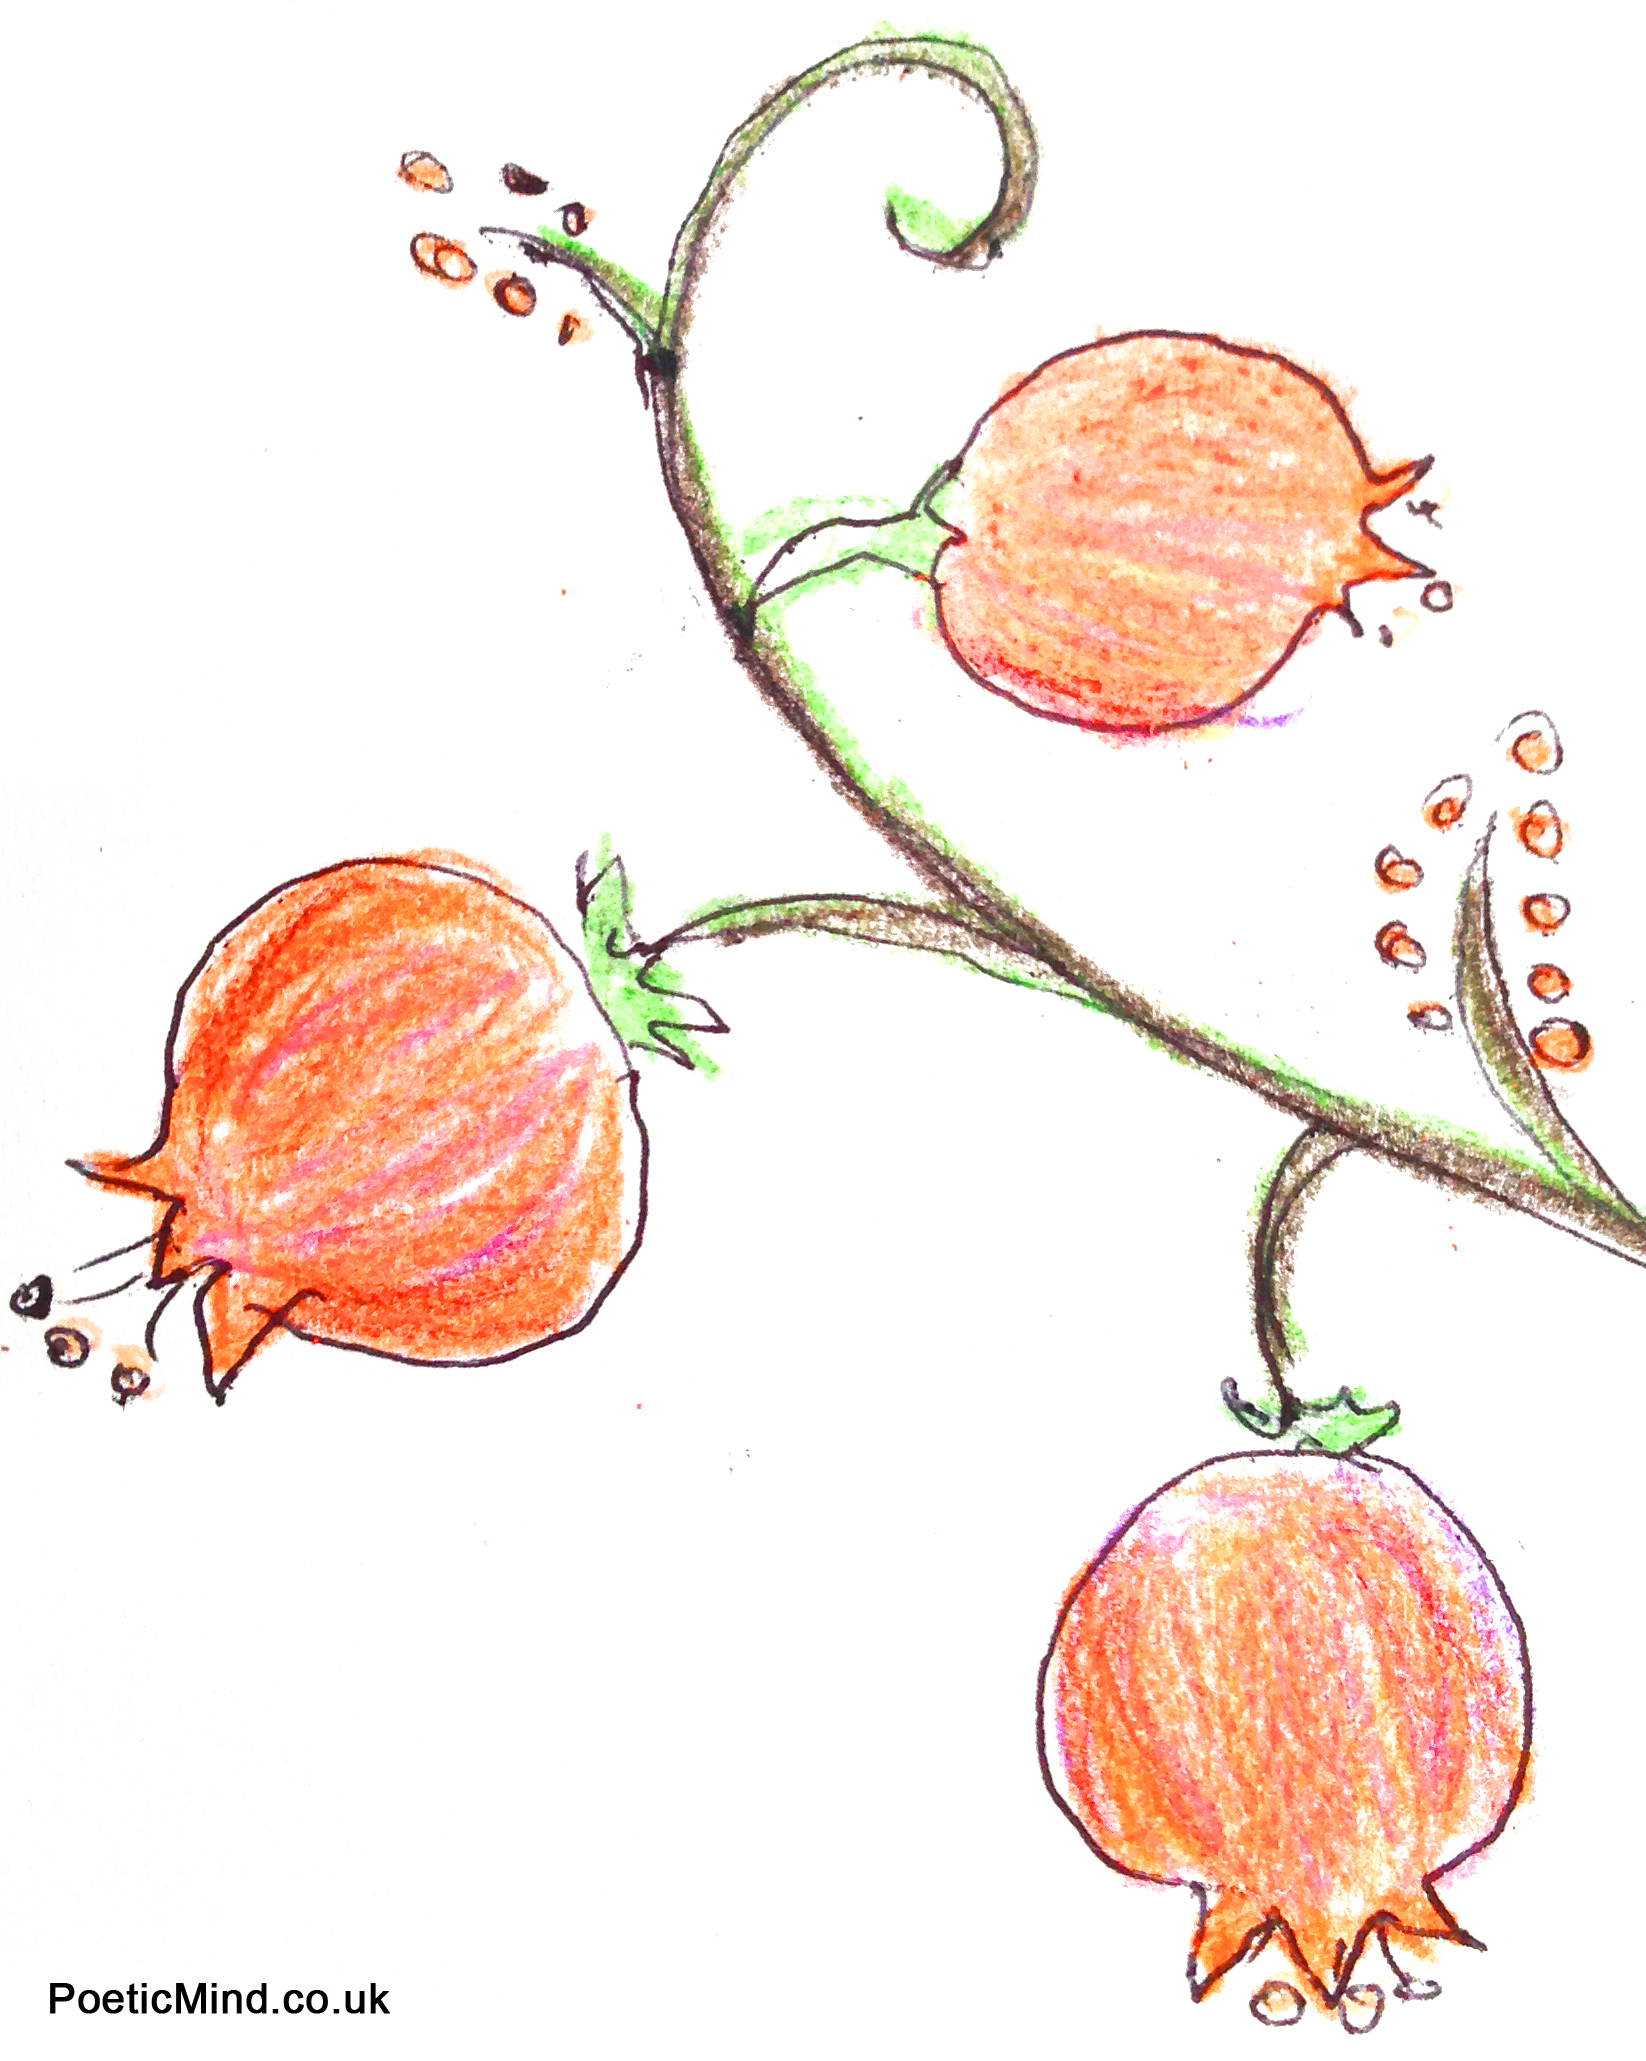 A pomegranate's abundant seeds symbolises creation, abundance, and a hope that our lives will be fruitful with good deeds. Illustration by Natalie and Gil Dekel.